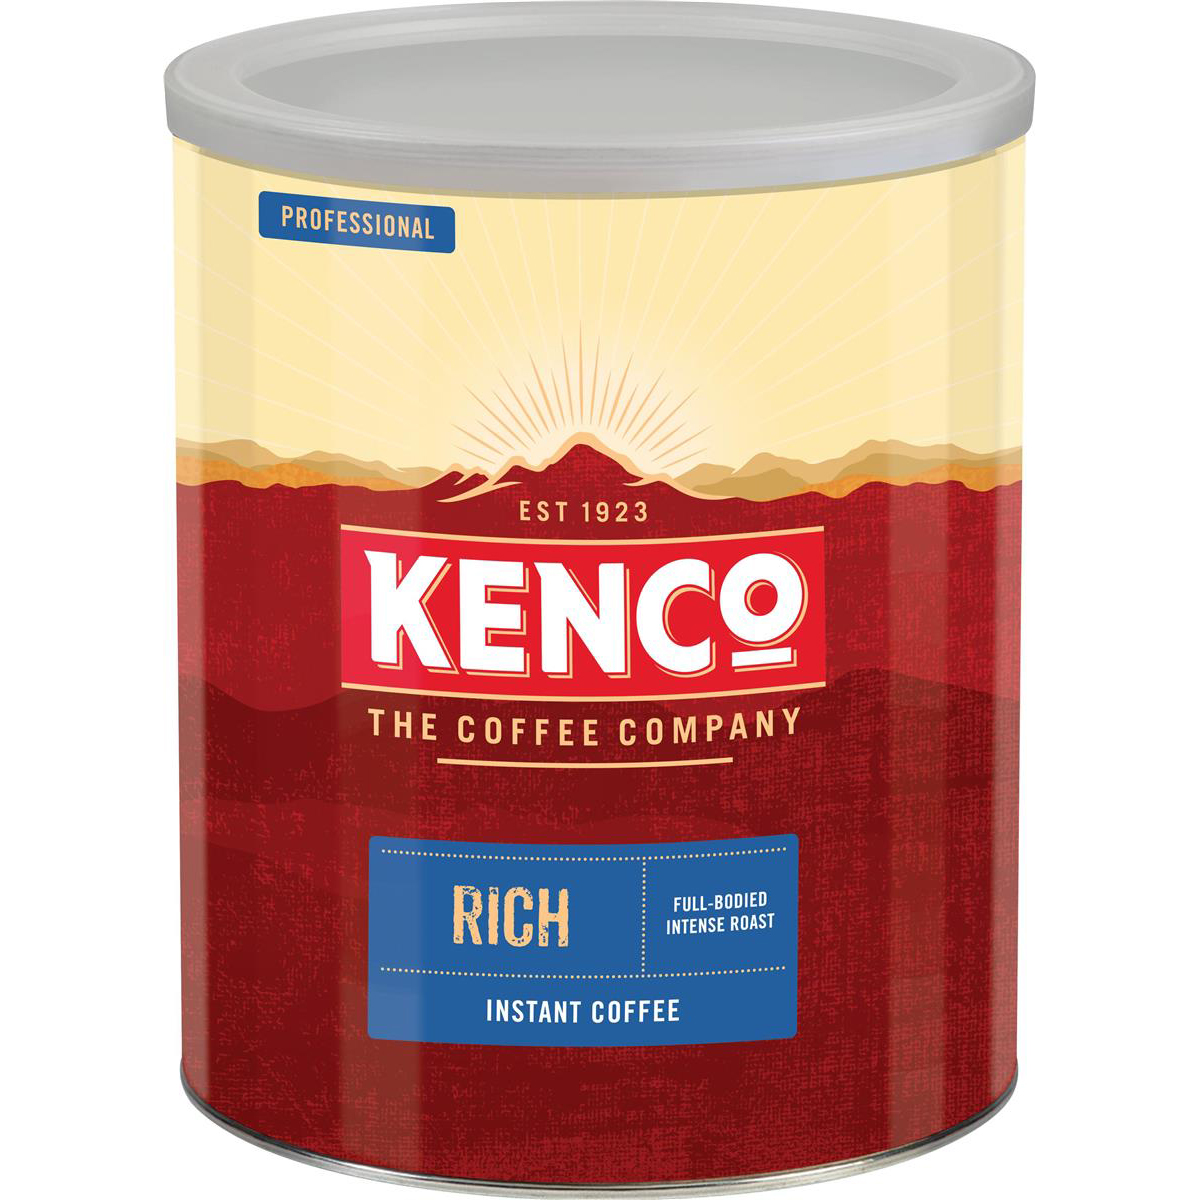 Kenco Really Rich Instant Coffee Tin 750g Ref 4032089